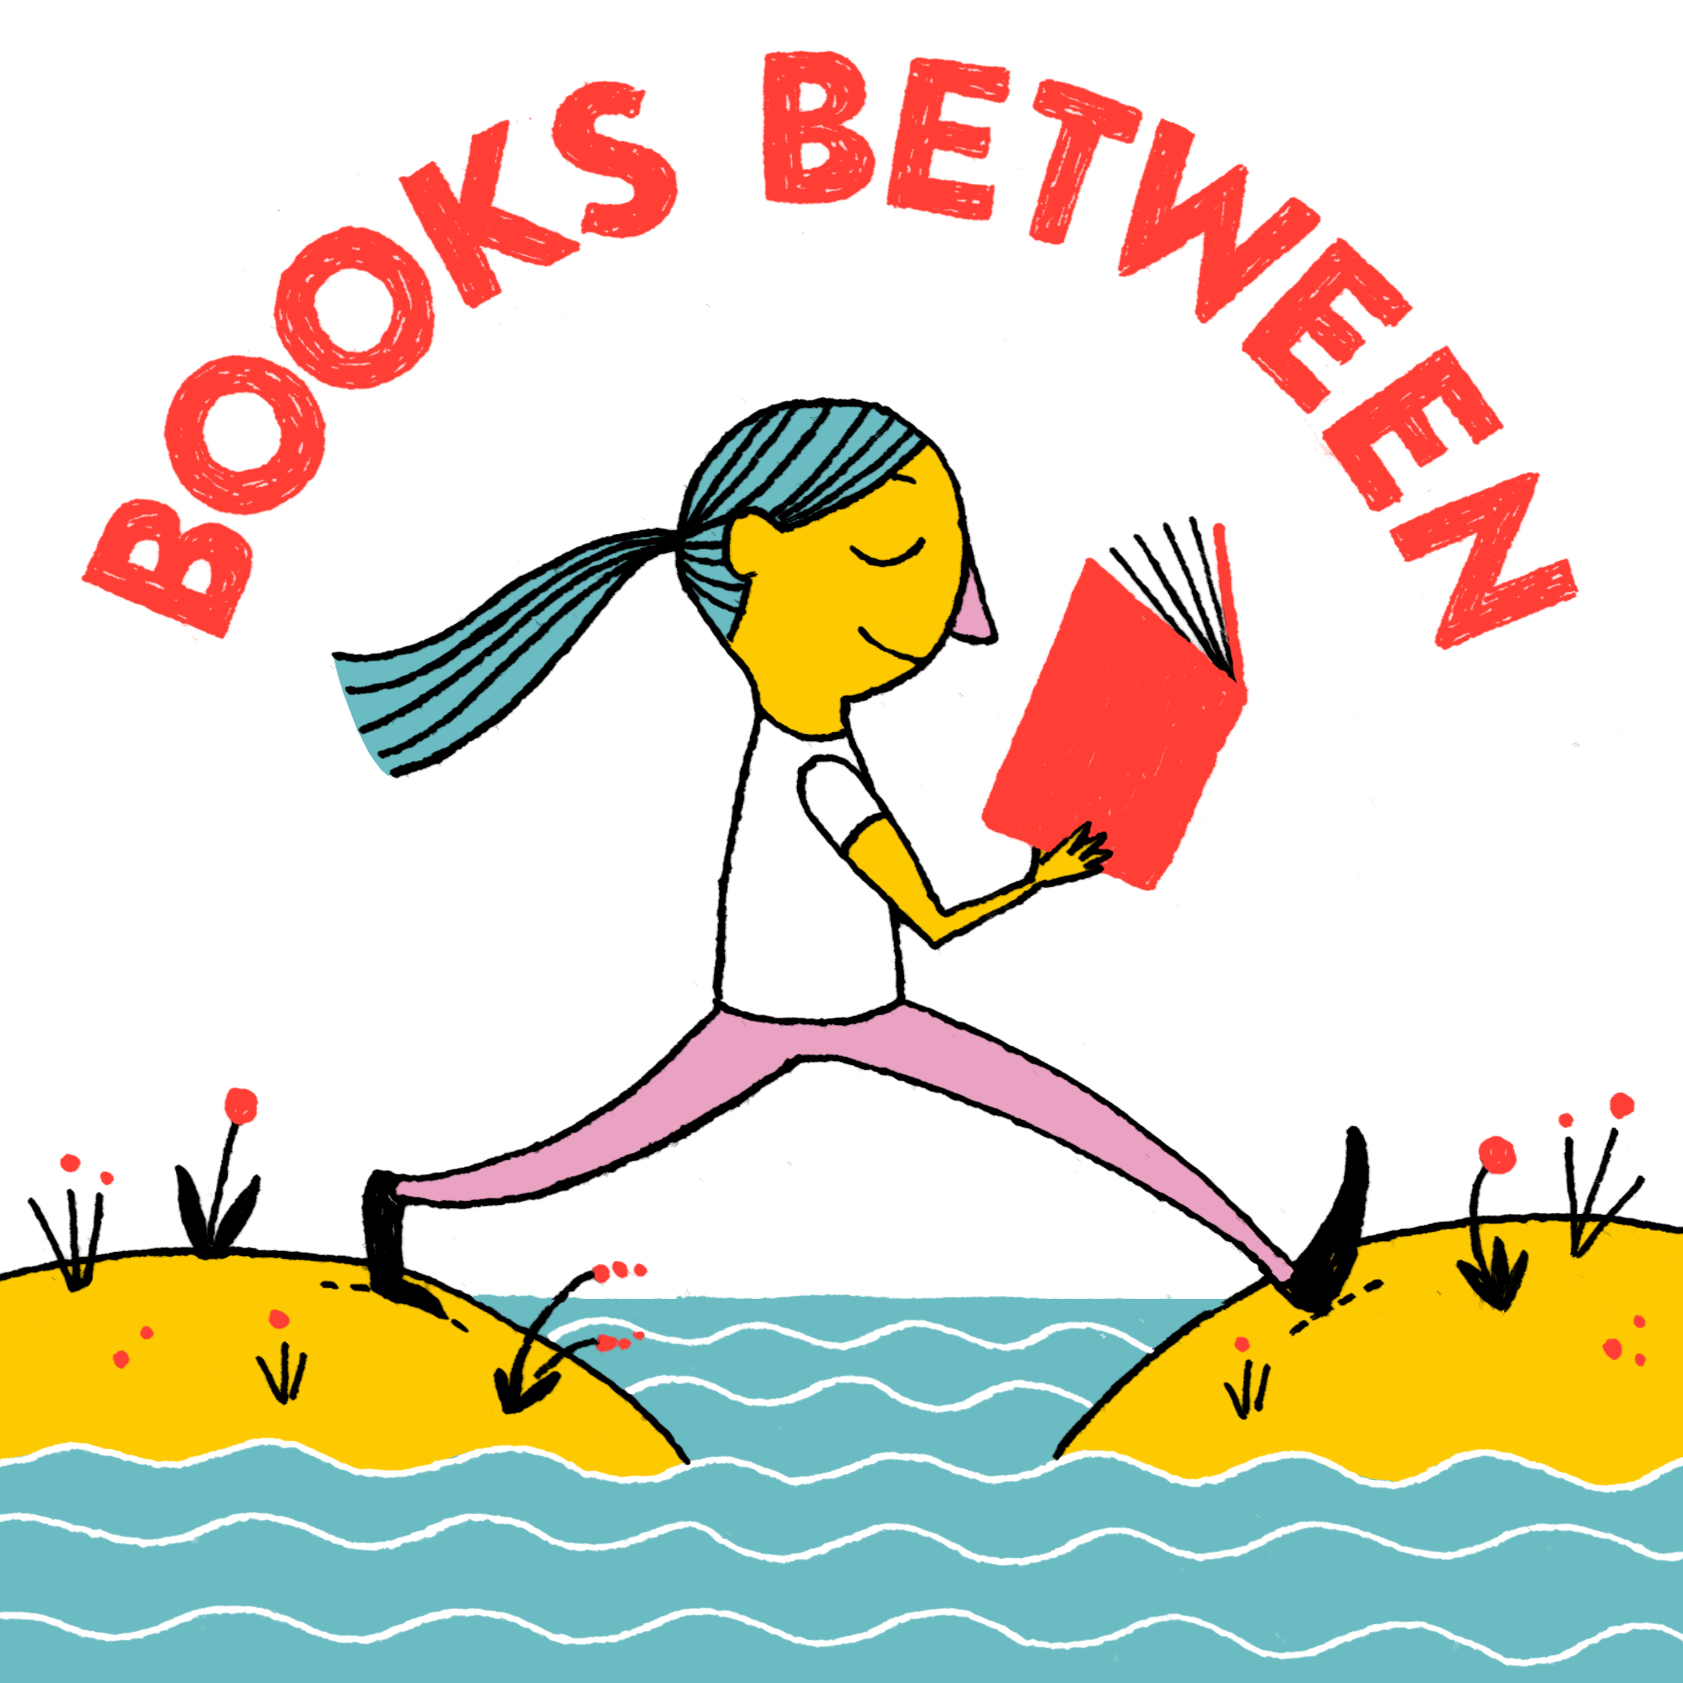 Books Between Podcast | Podbay